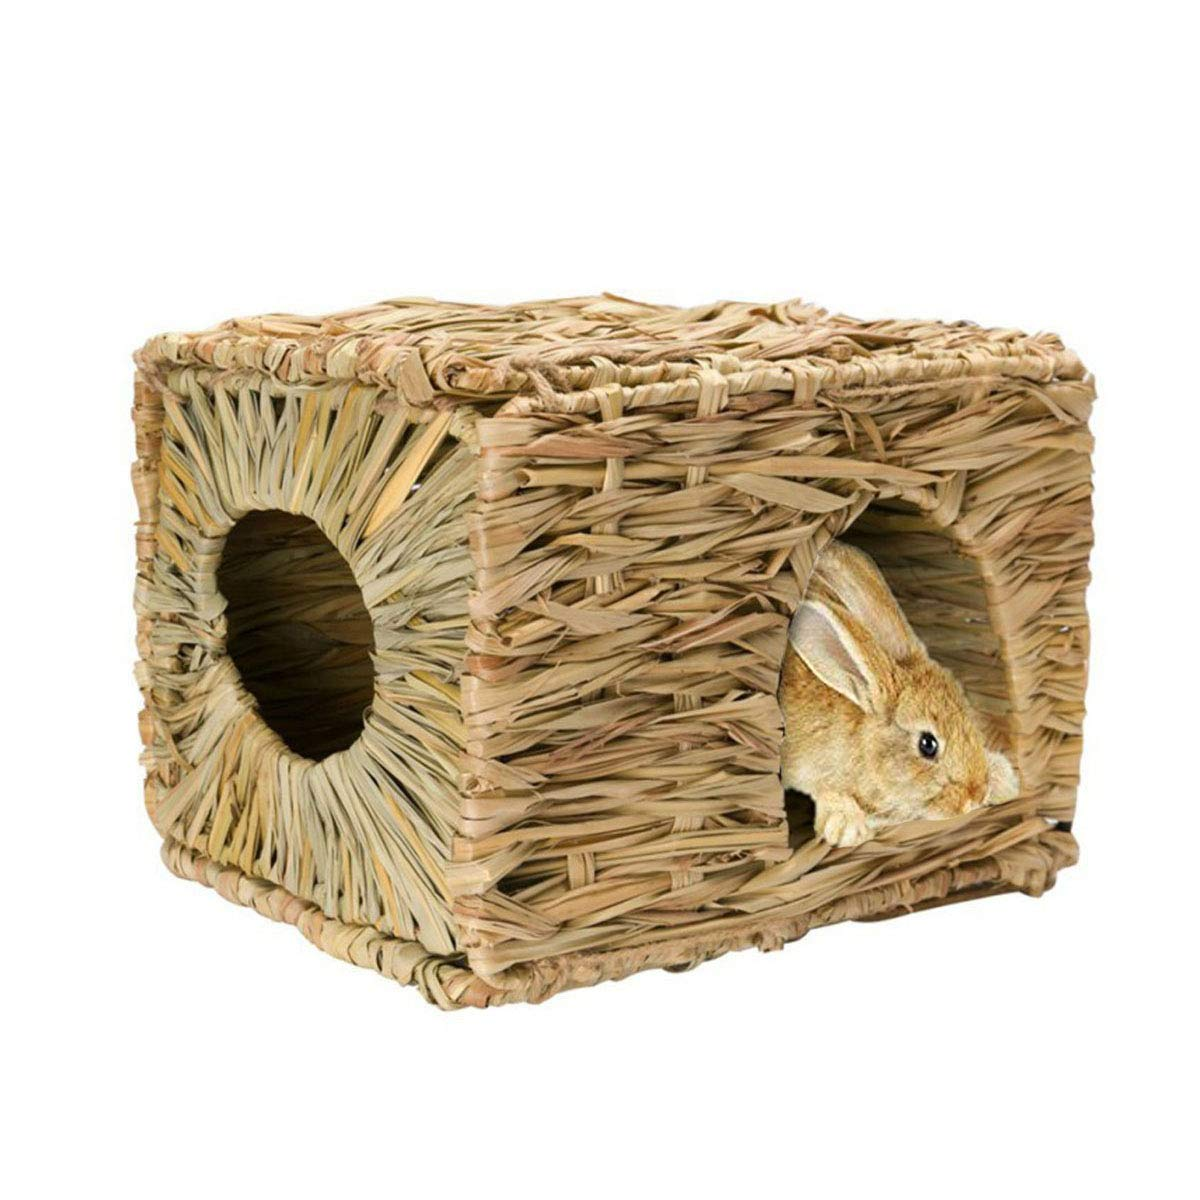 Tfwadmx Rabbit Grass House - Natural Hand Woven Seagrass Play Hay Bed, Hideaway Hut Toy for Bunny Hamster Guinea Pig Chinchilla Ferret by Tfwadmx